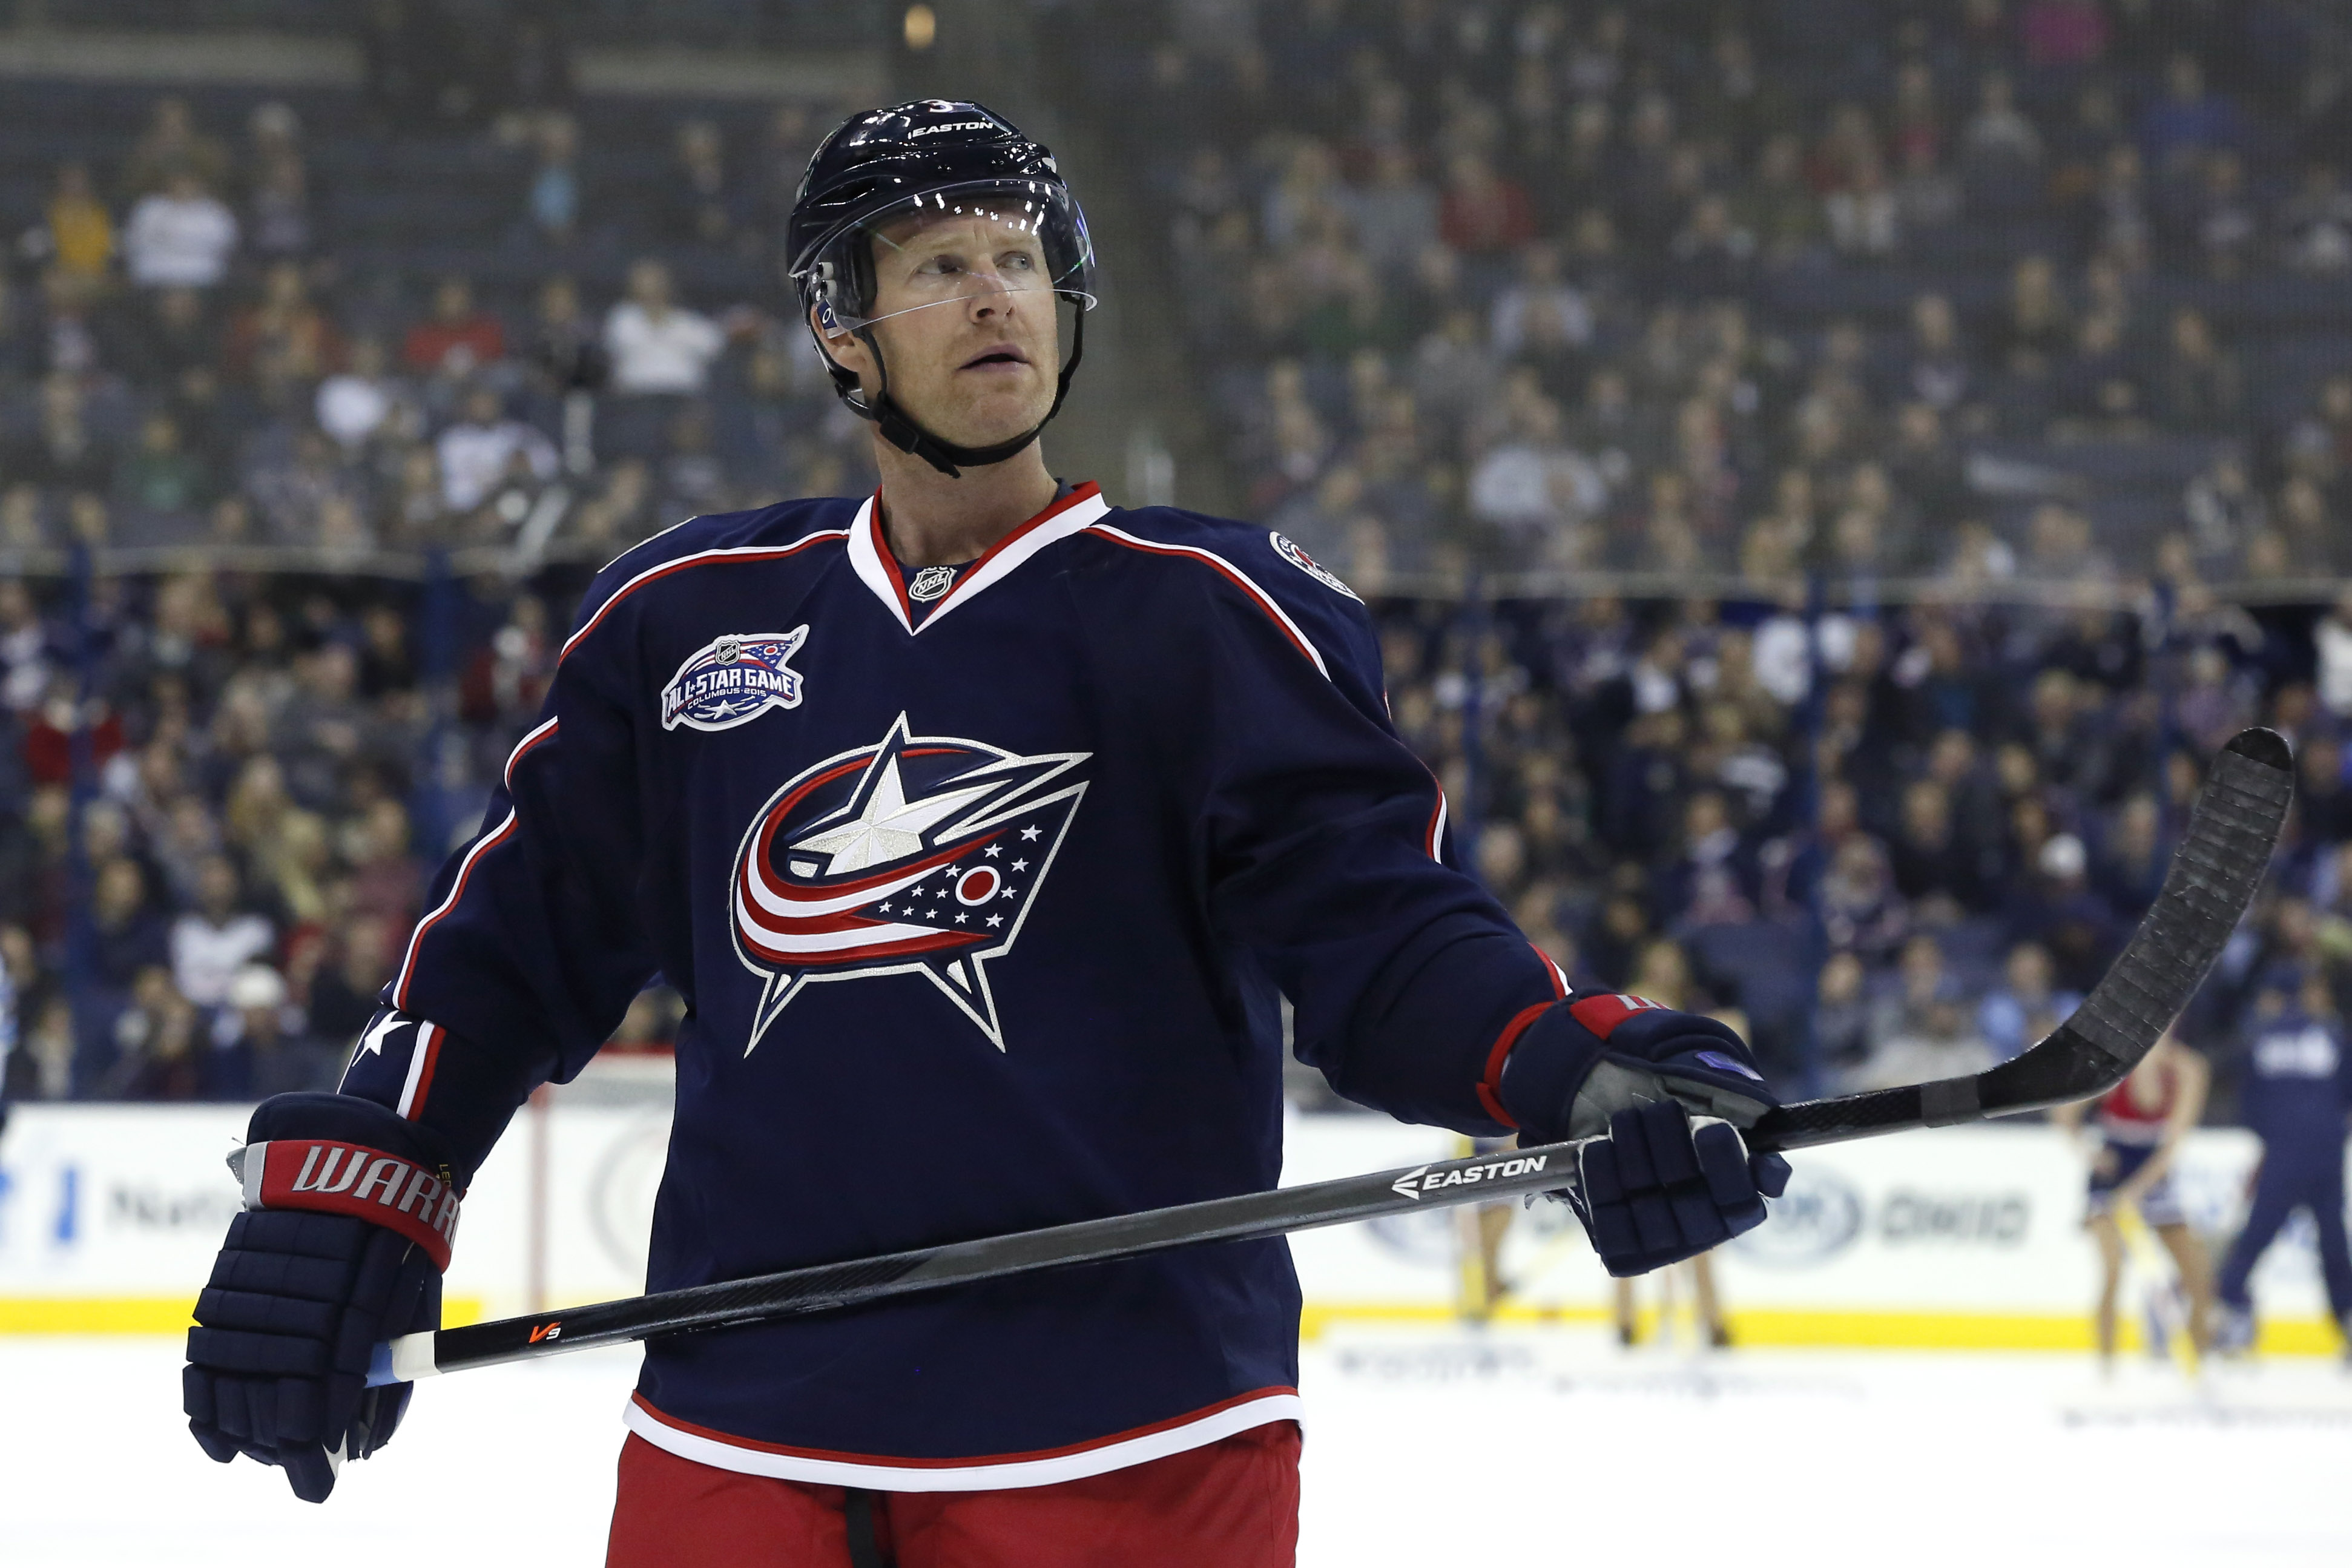 In this Nov 25, 2014, former Columbus Blue Jackets defenseman Jordan Leopold appears during the NHL game in Columbus, OH.